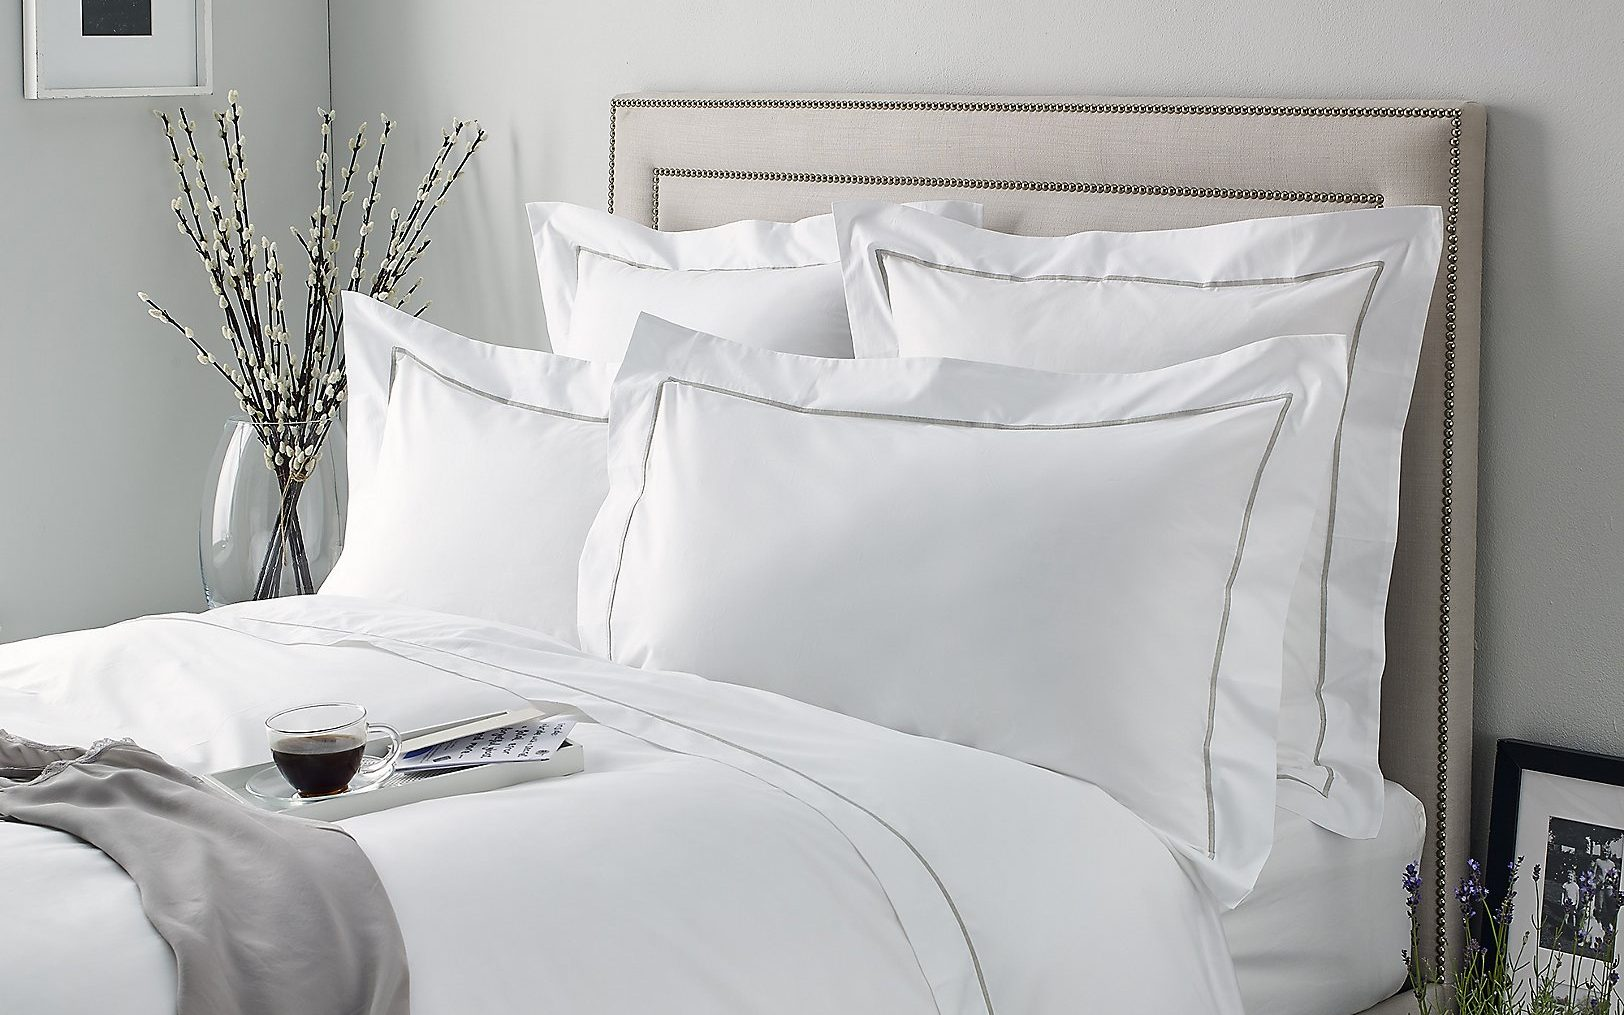 Cotton Bed Linen Sale 15 Of The Best Duvet Covers And Bedding Sets For A Stylish Bedroom